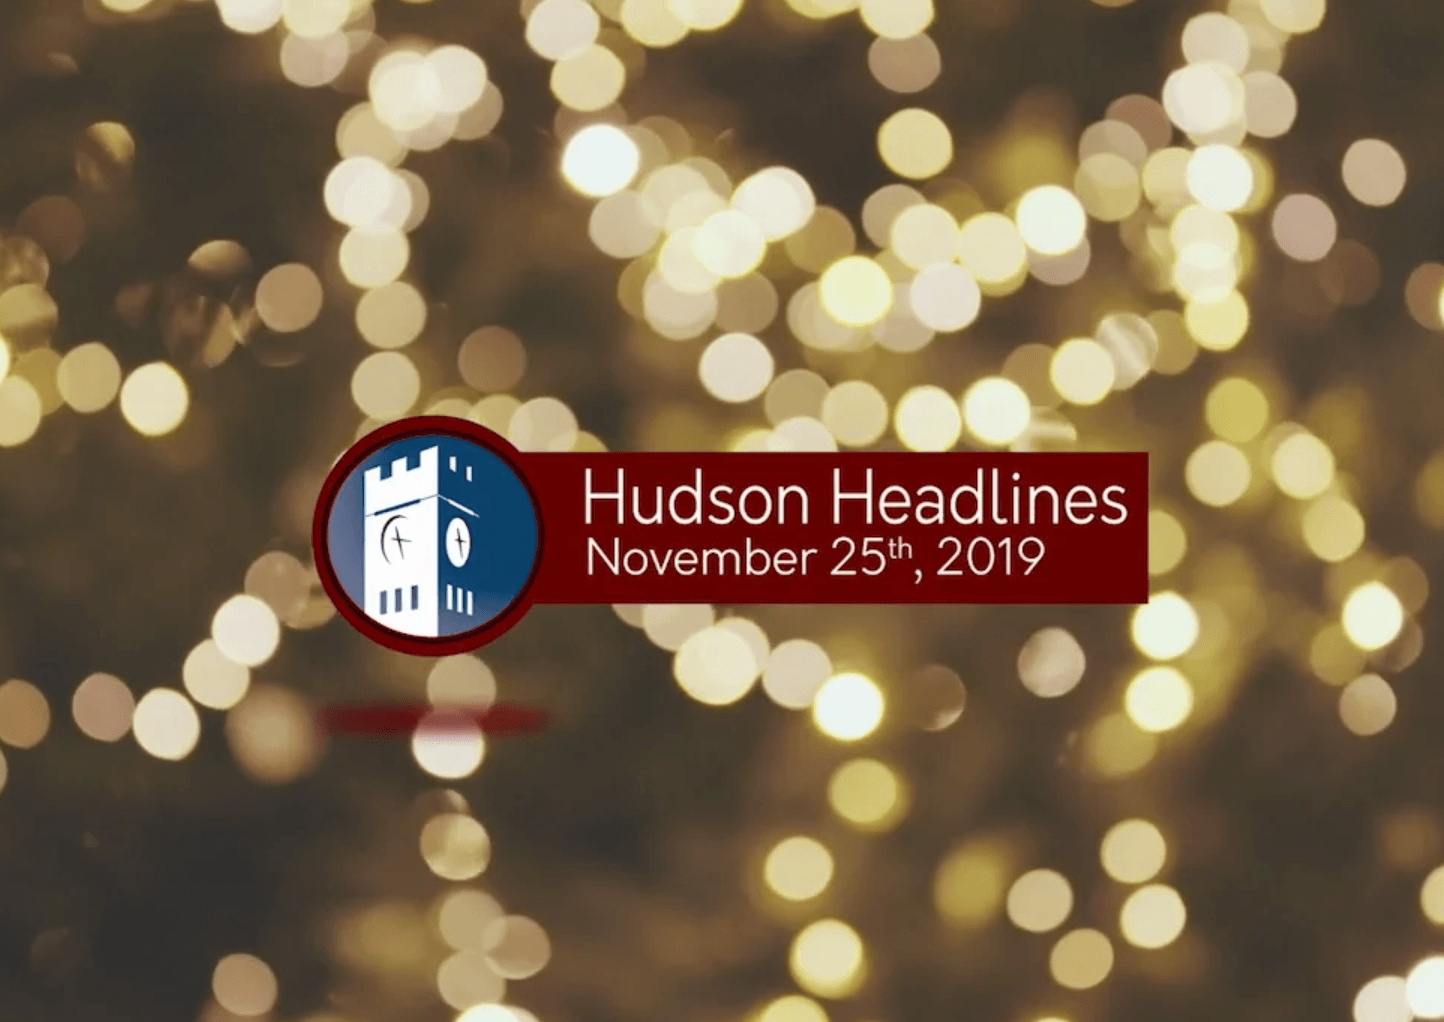 Hudson Headlines Holiday Lights